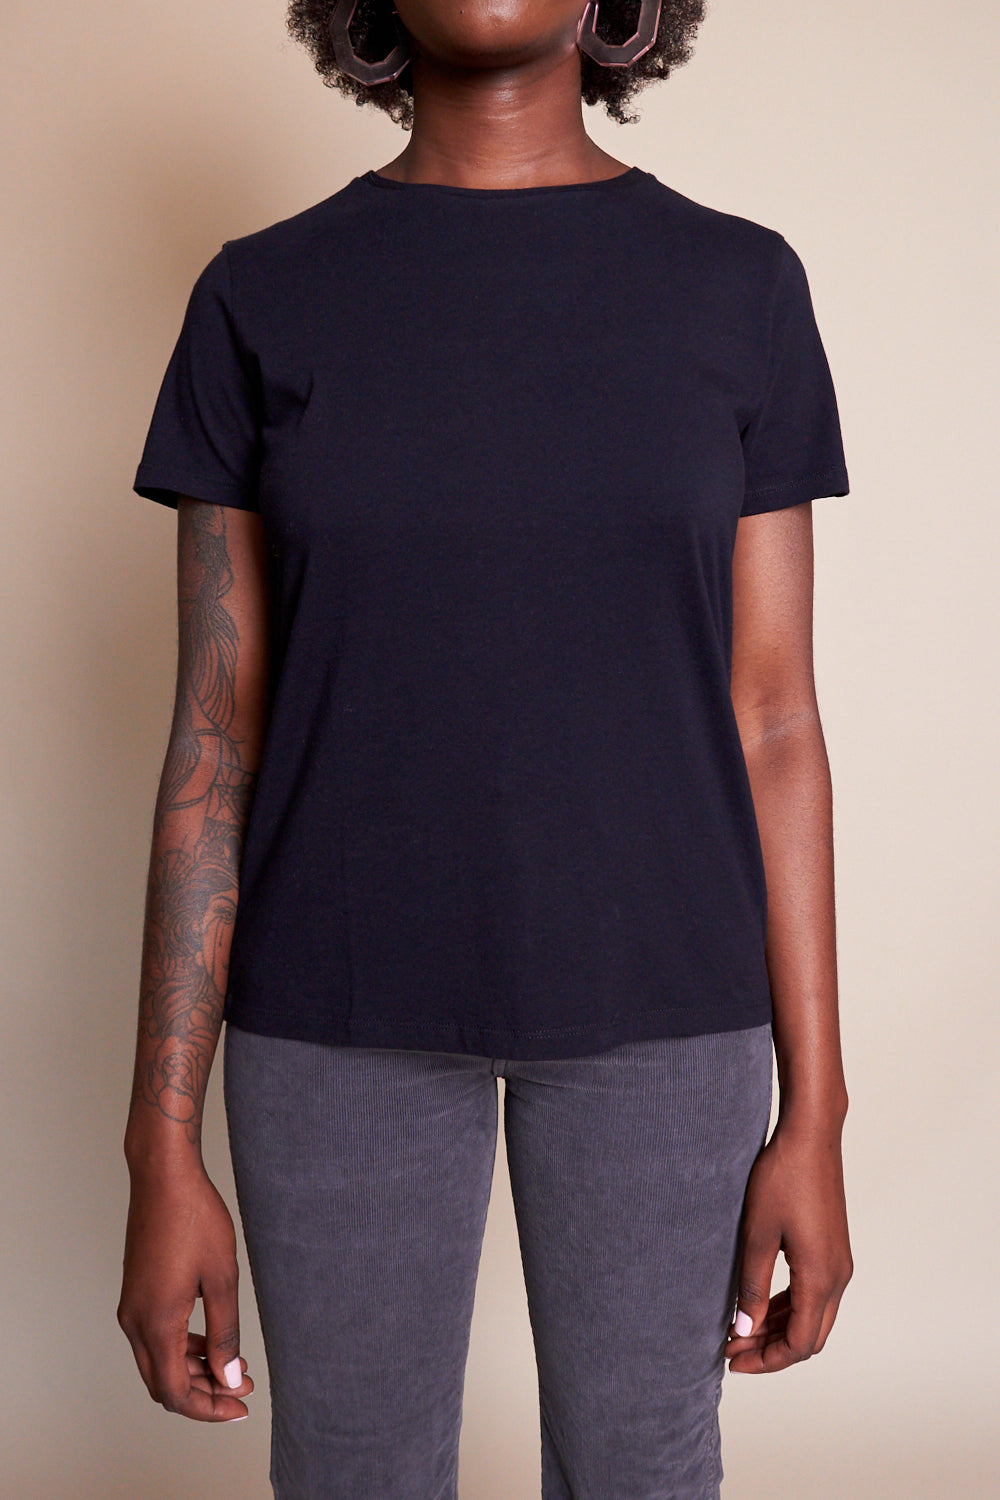 Majestic Cotton Silk Touch Short Sleeve Crew in Noir - Vert & Vogue